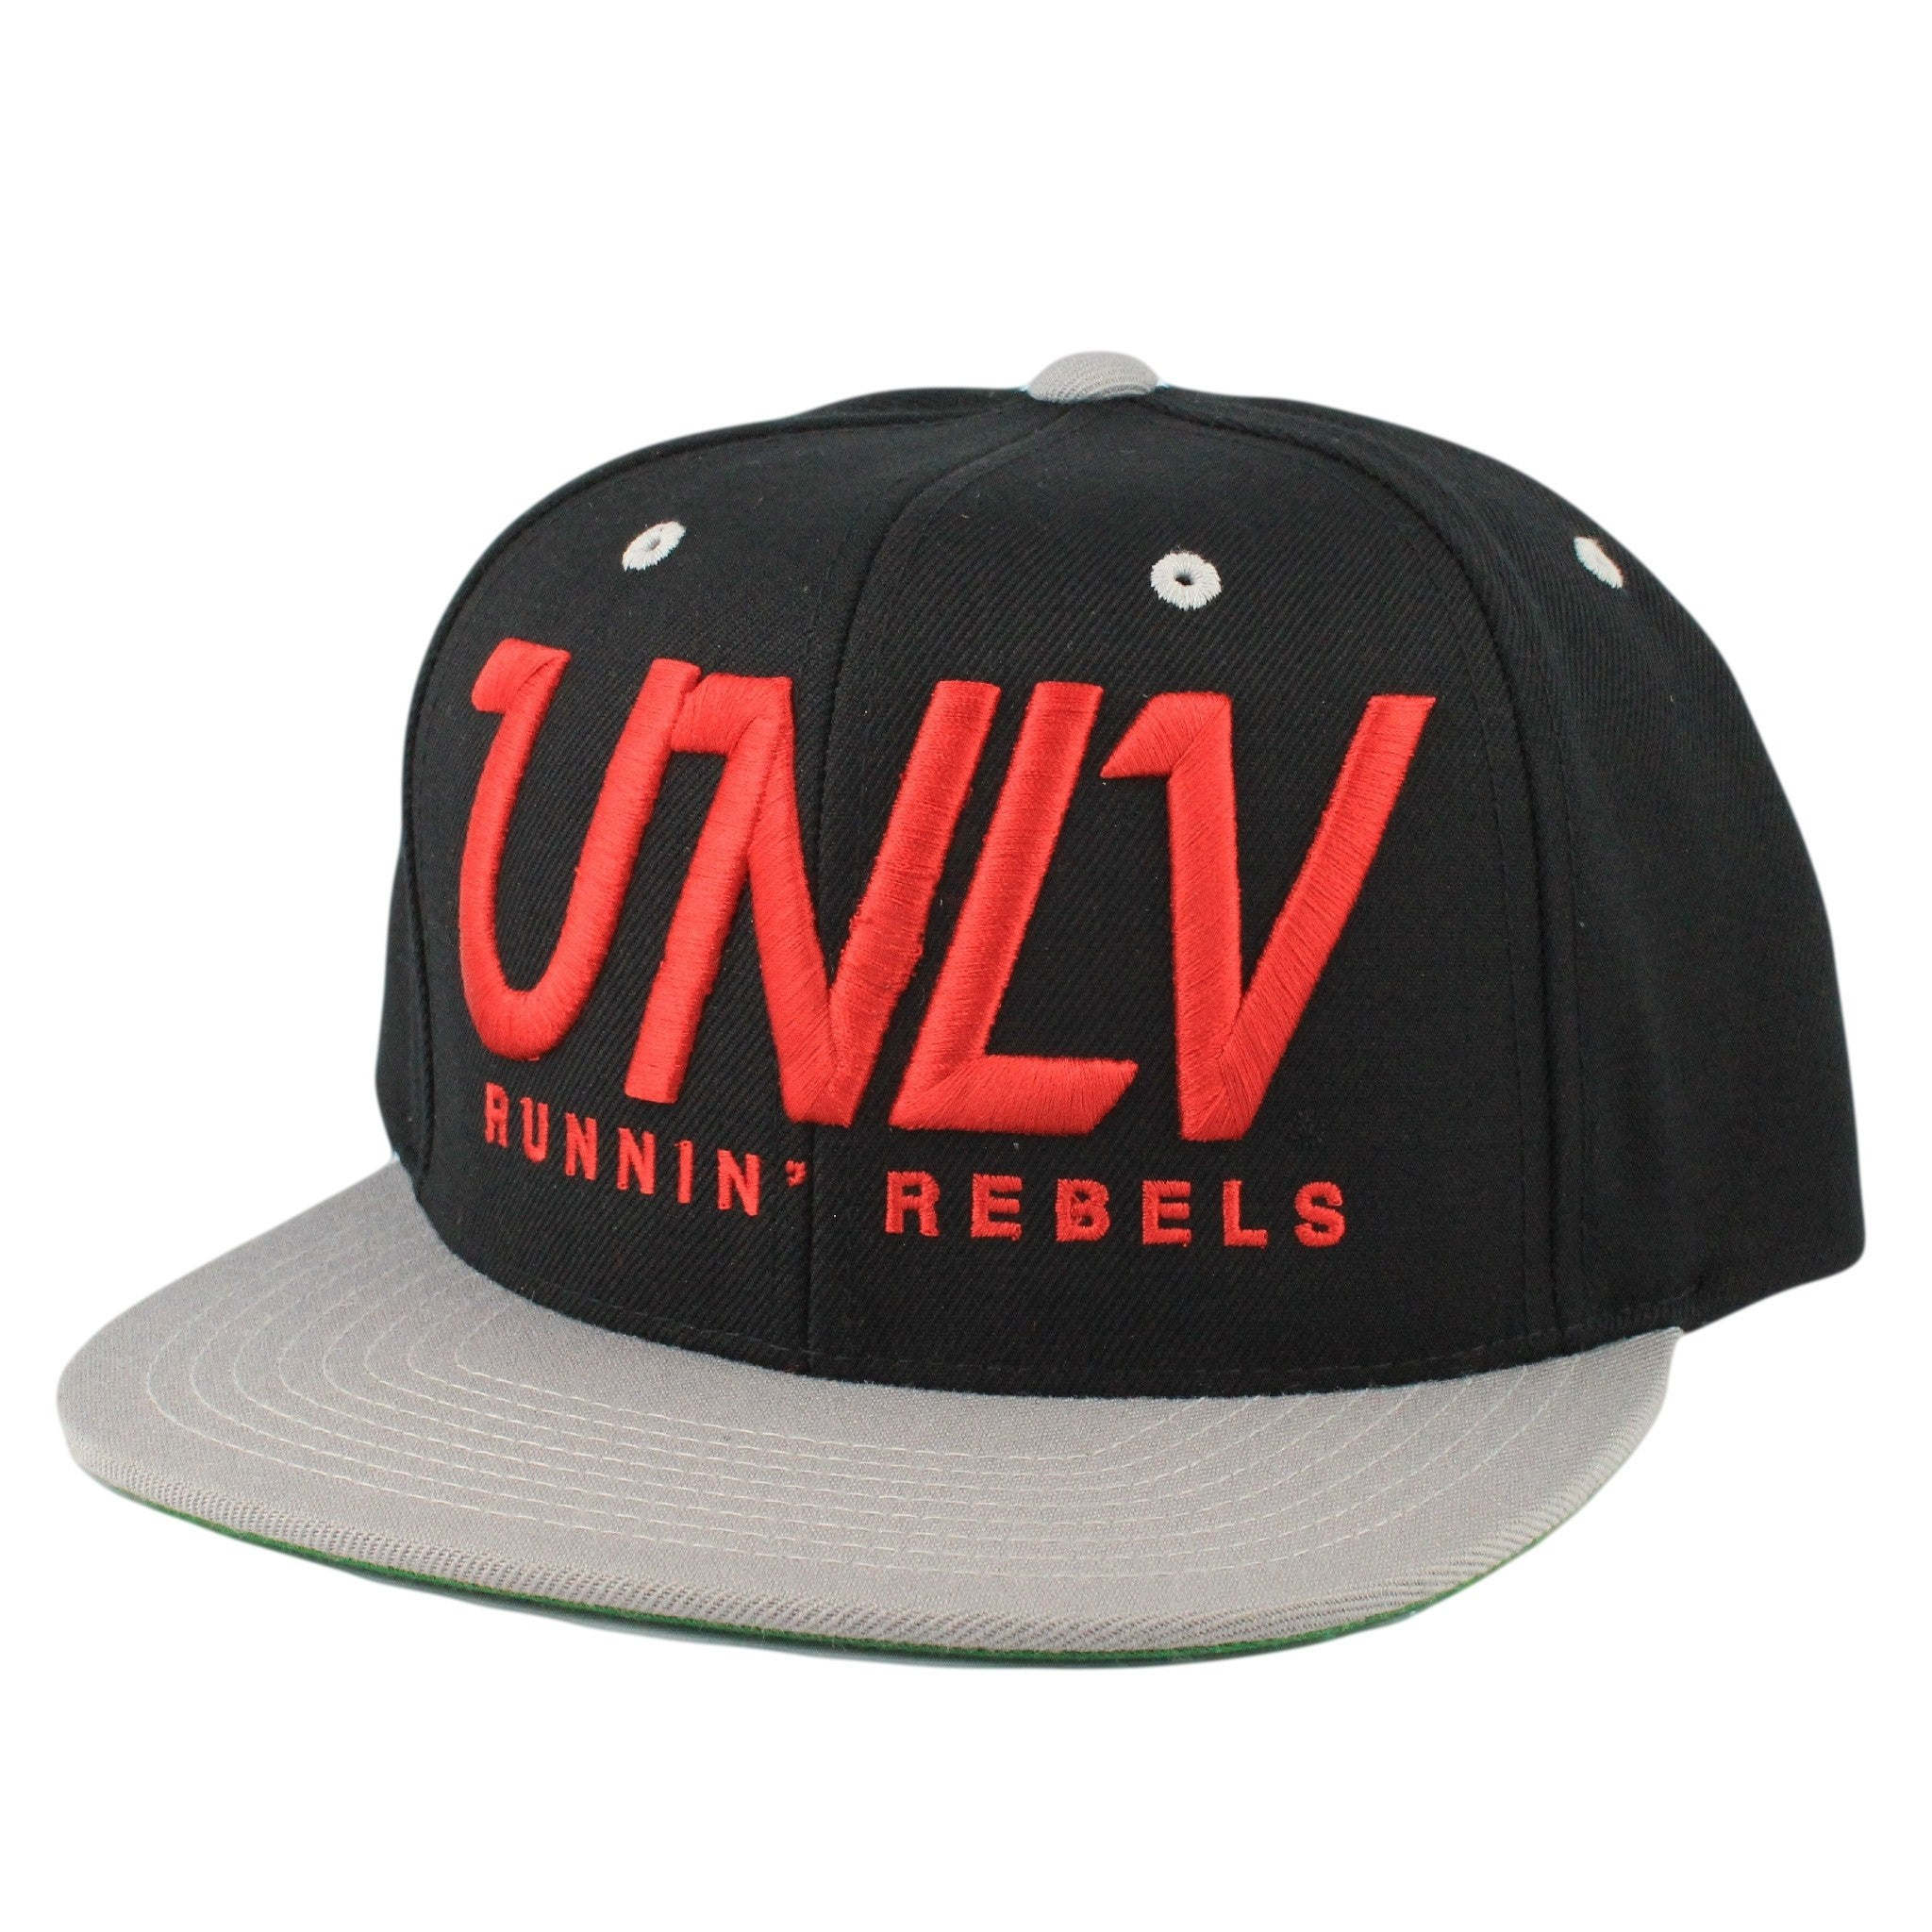 UNLV Rebels Black Gray Red Snapback  7cf410499ad5